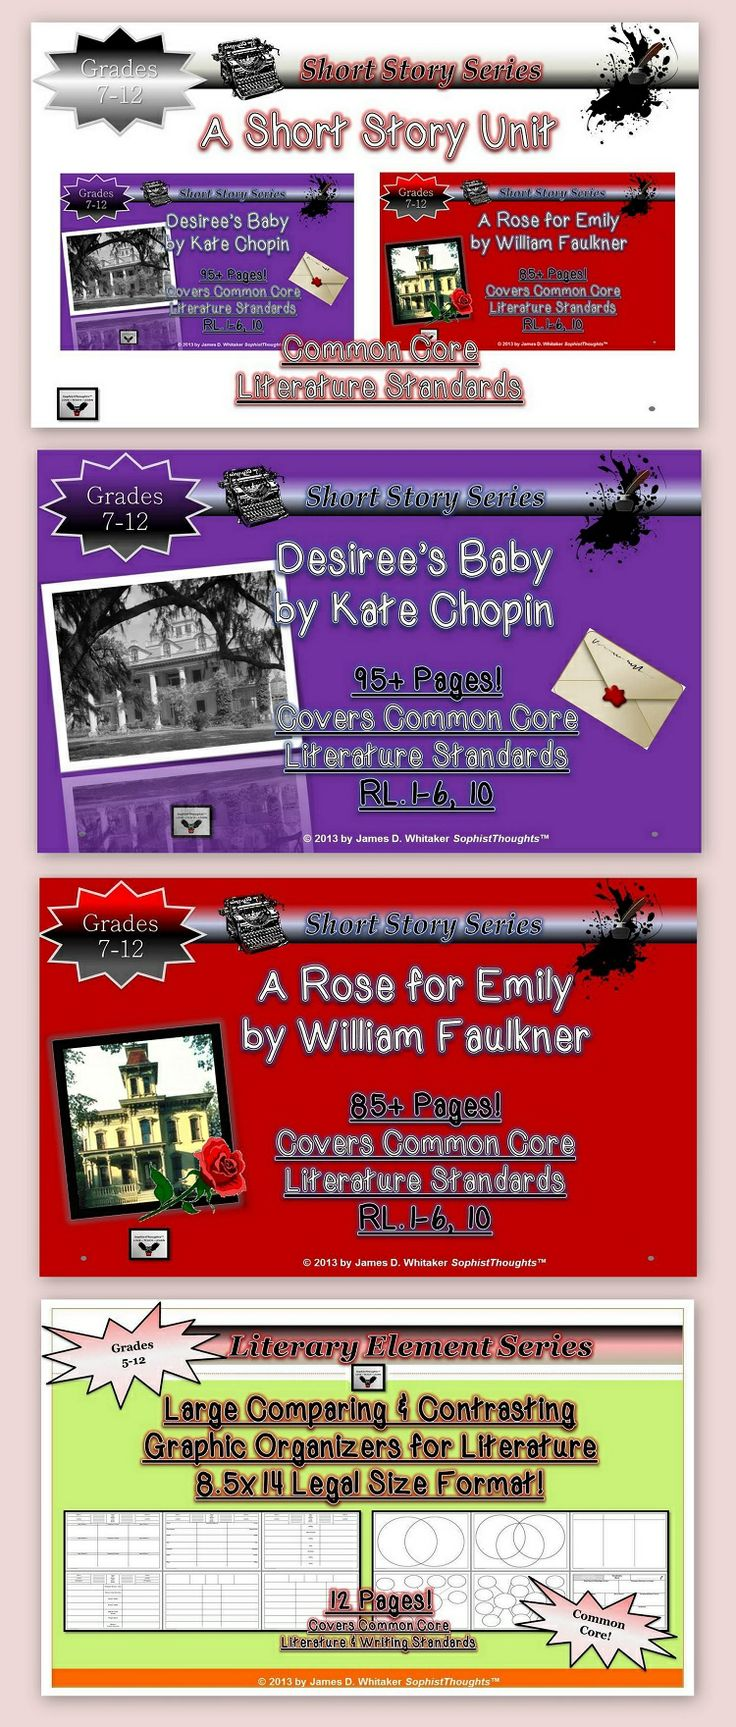 59 best the short story images on pinterest short stories story short story unit study desirees baby a rose for emily common core buycottarizona